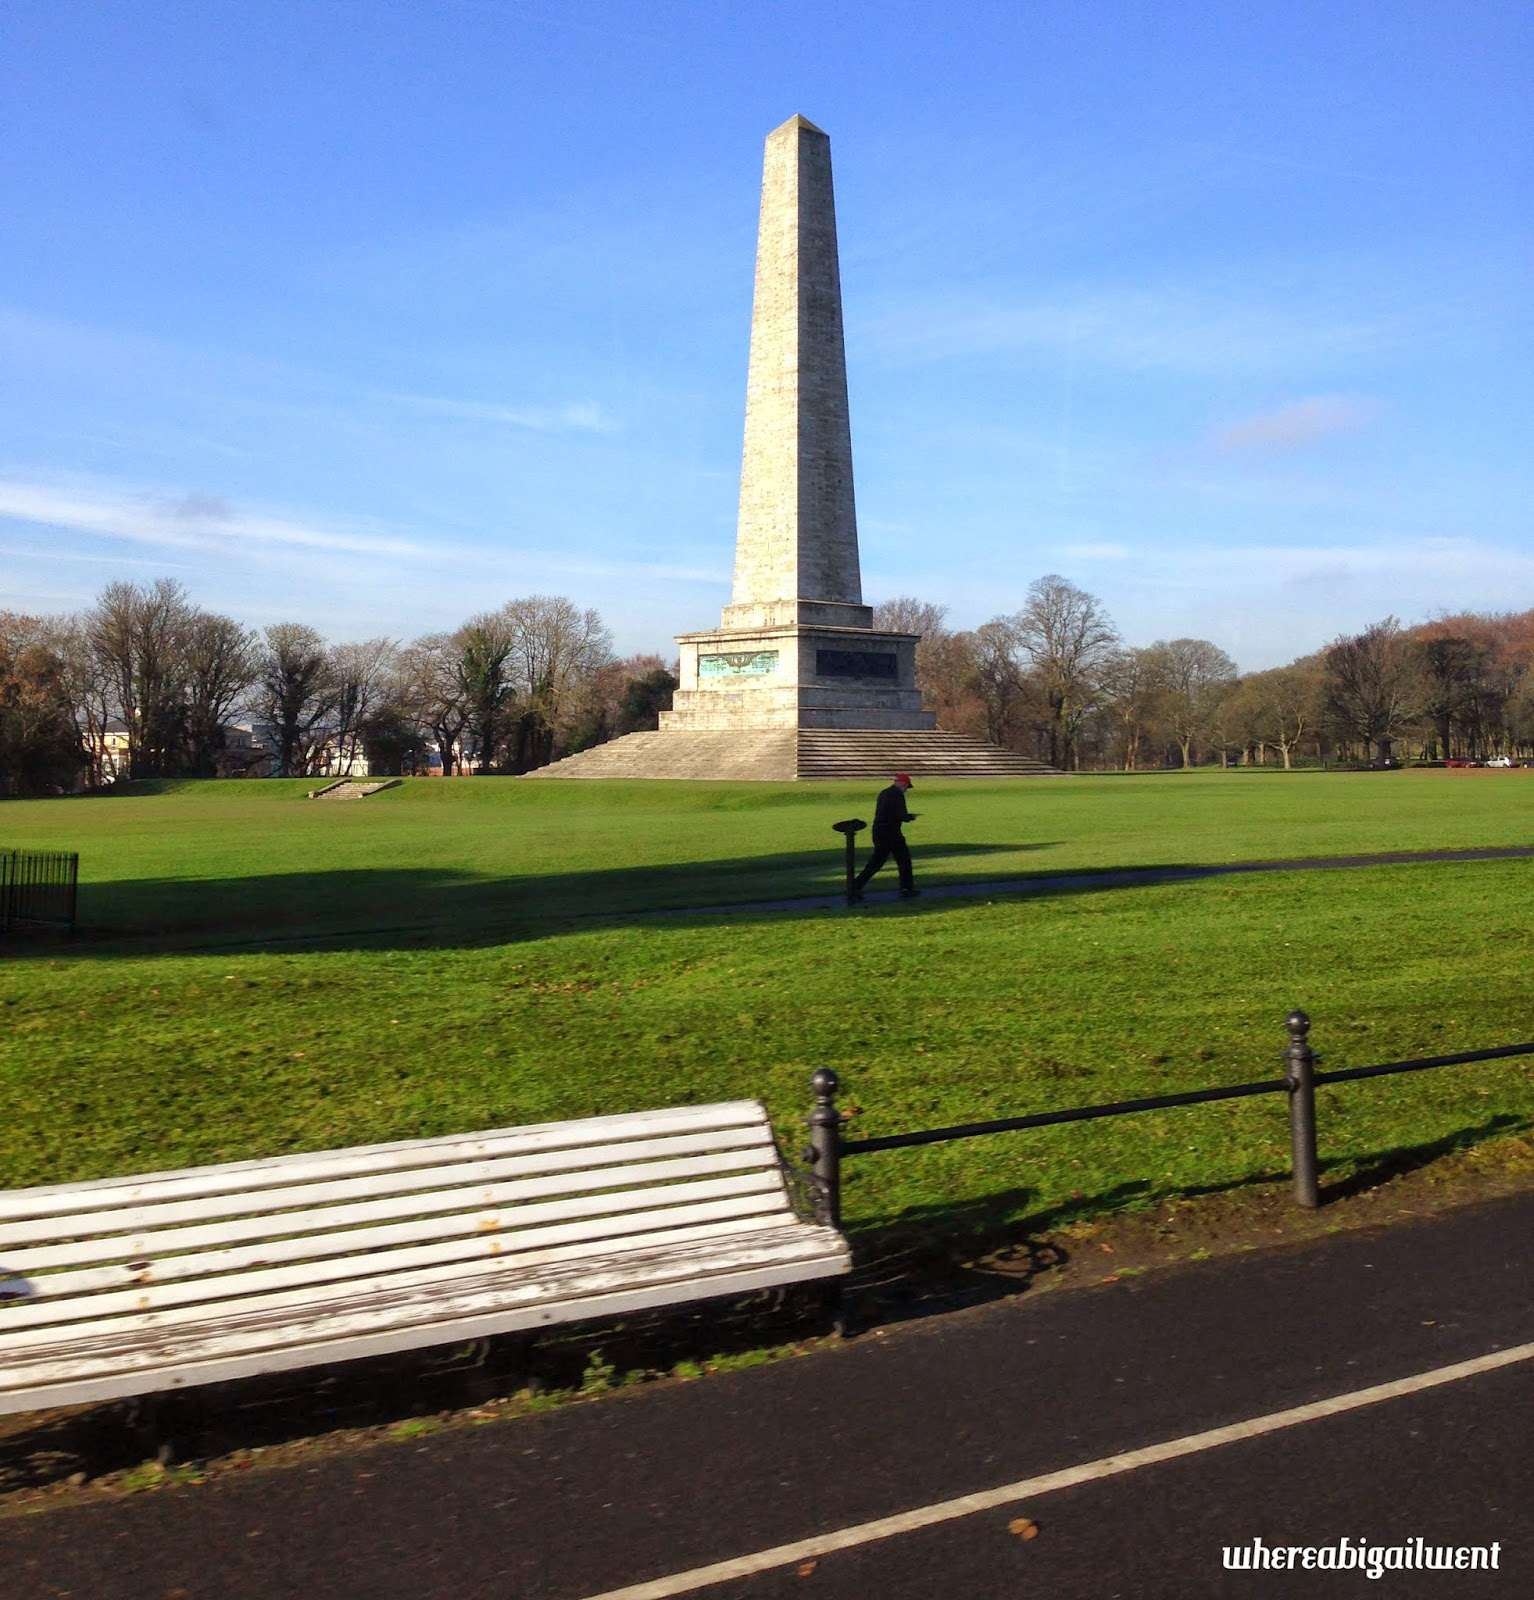 things to do and see in dublin apart from the guinness storehouse we d zipped quickly through the heart of the city before heading north across the river liffey and towards phoenix park one of the largest enclosed parks